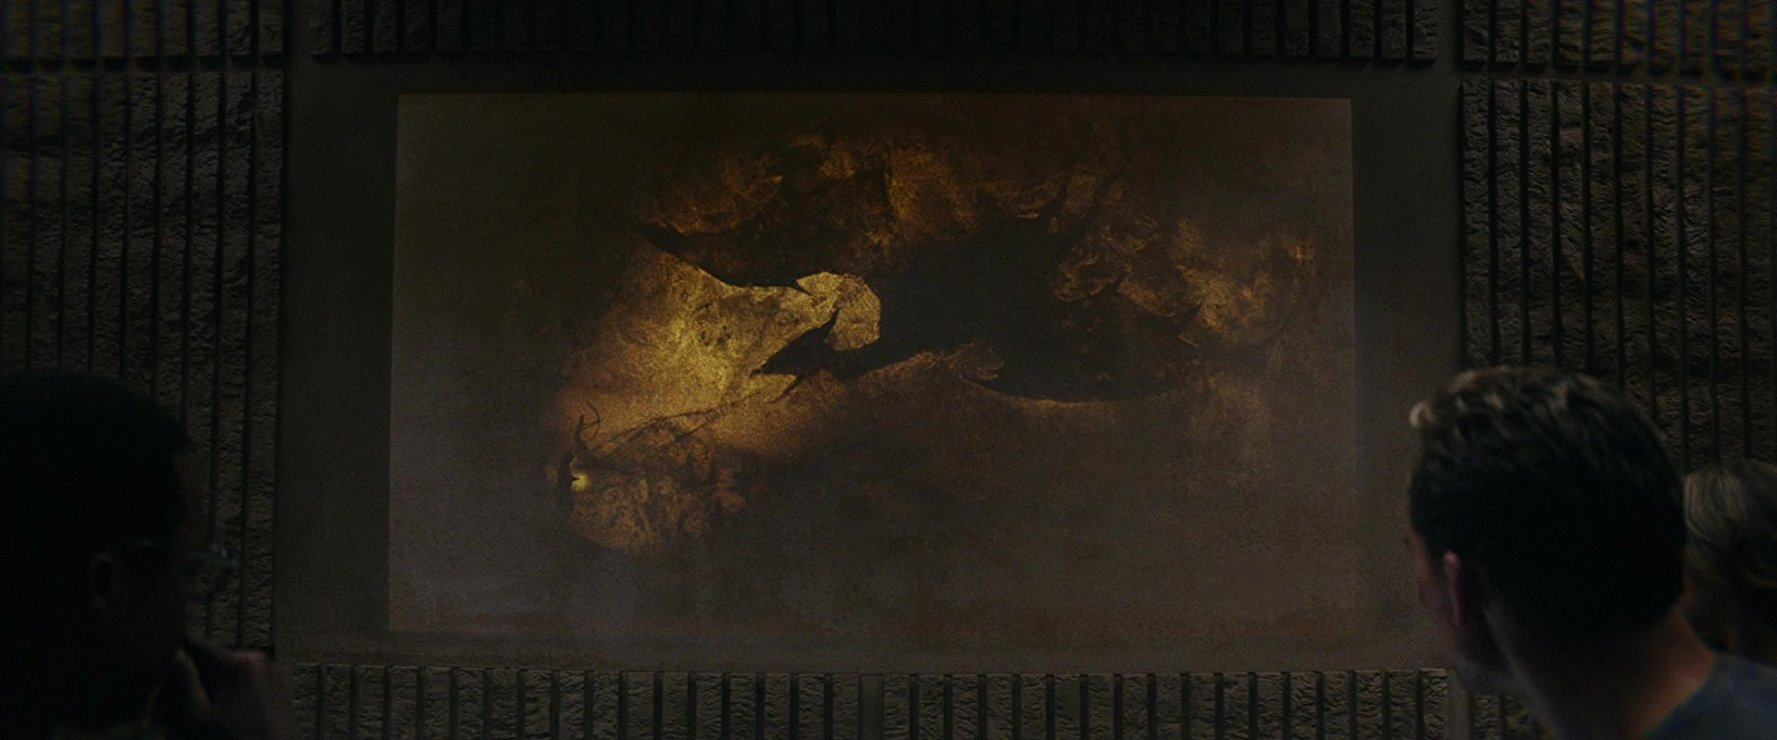 Godzilla: King of the Monsters [Coming Soon]